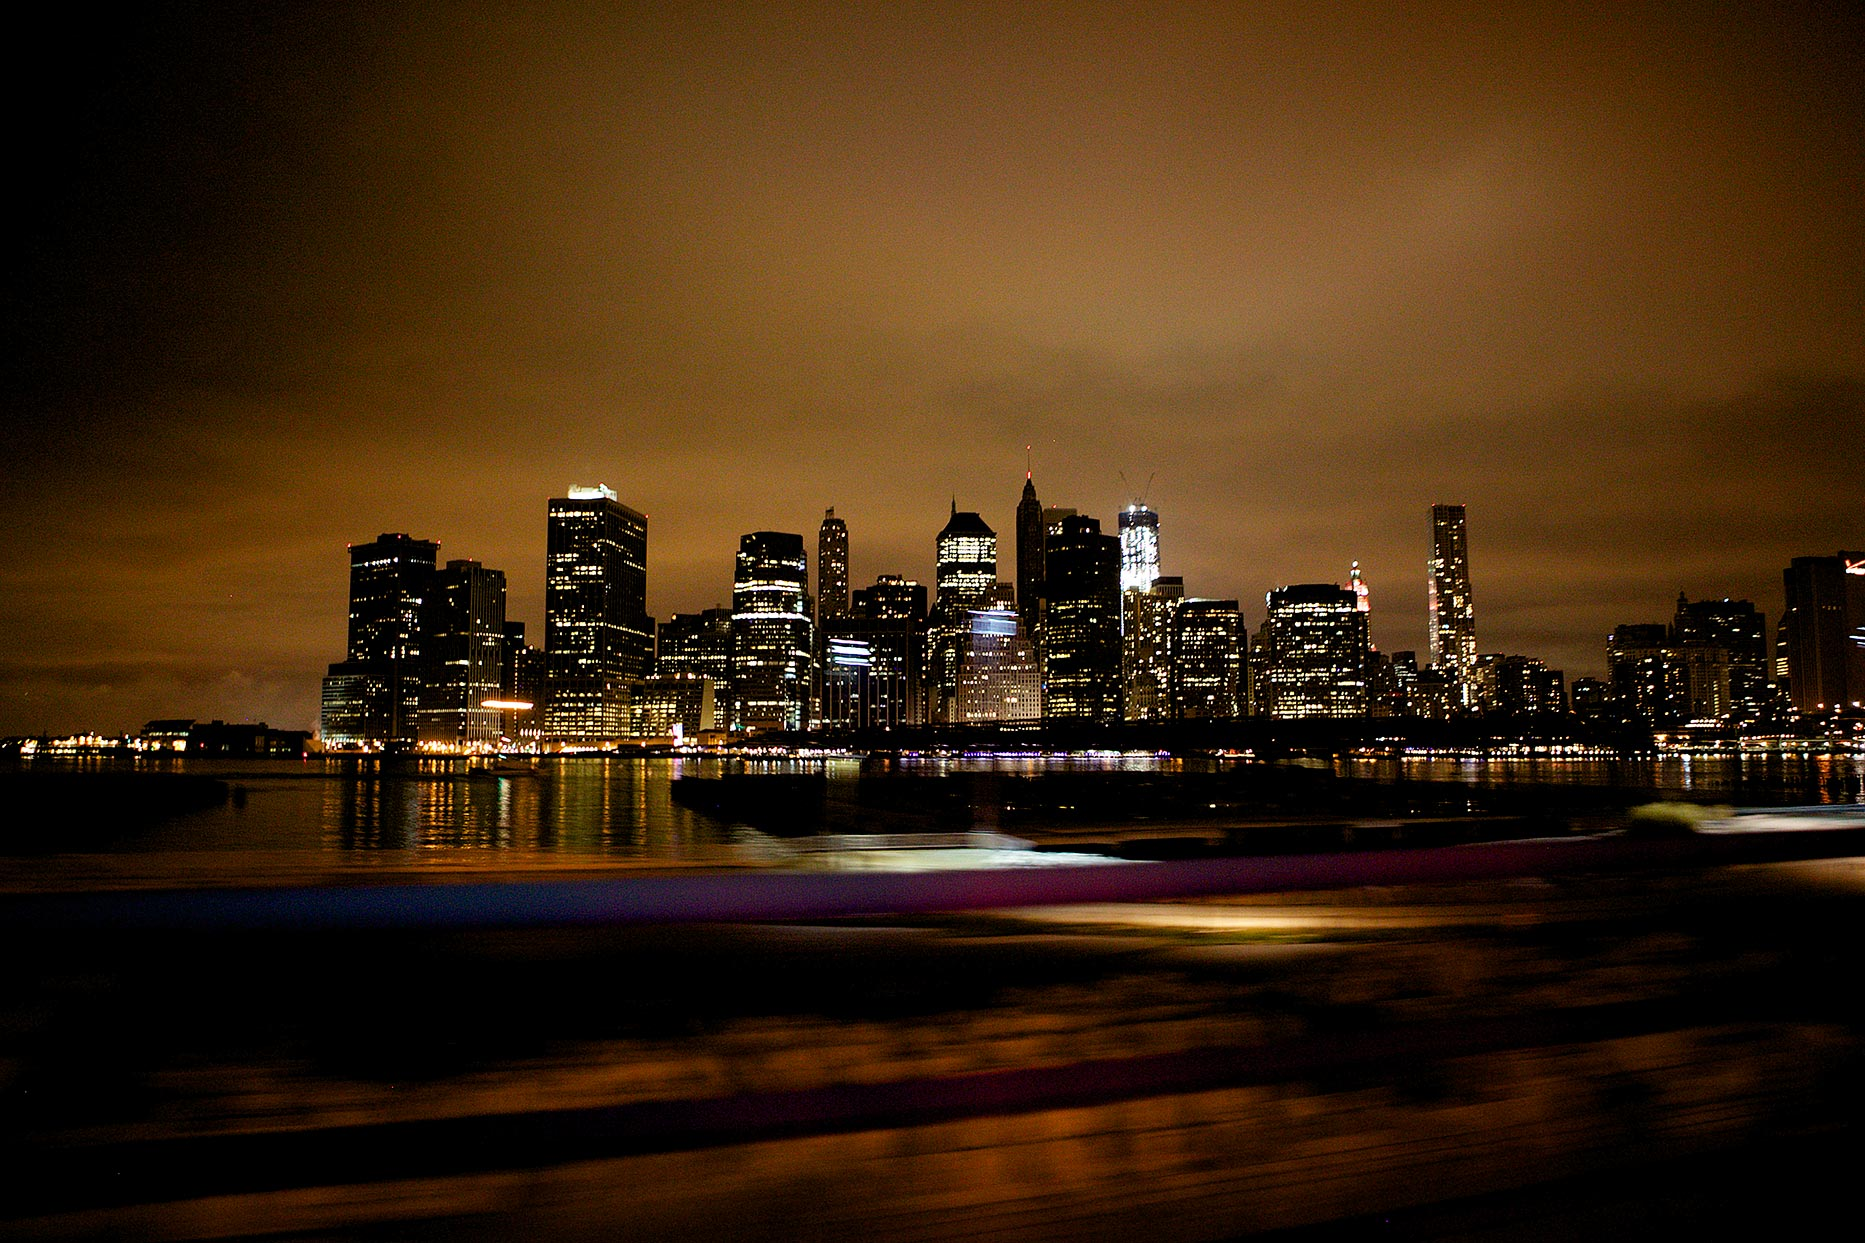 skyline-shot-at-night-from-car.jpg